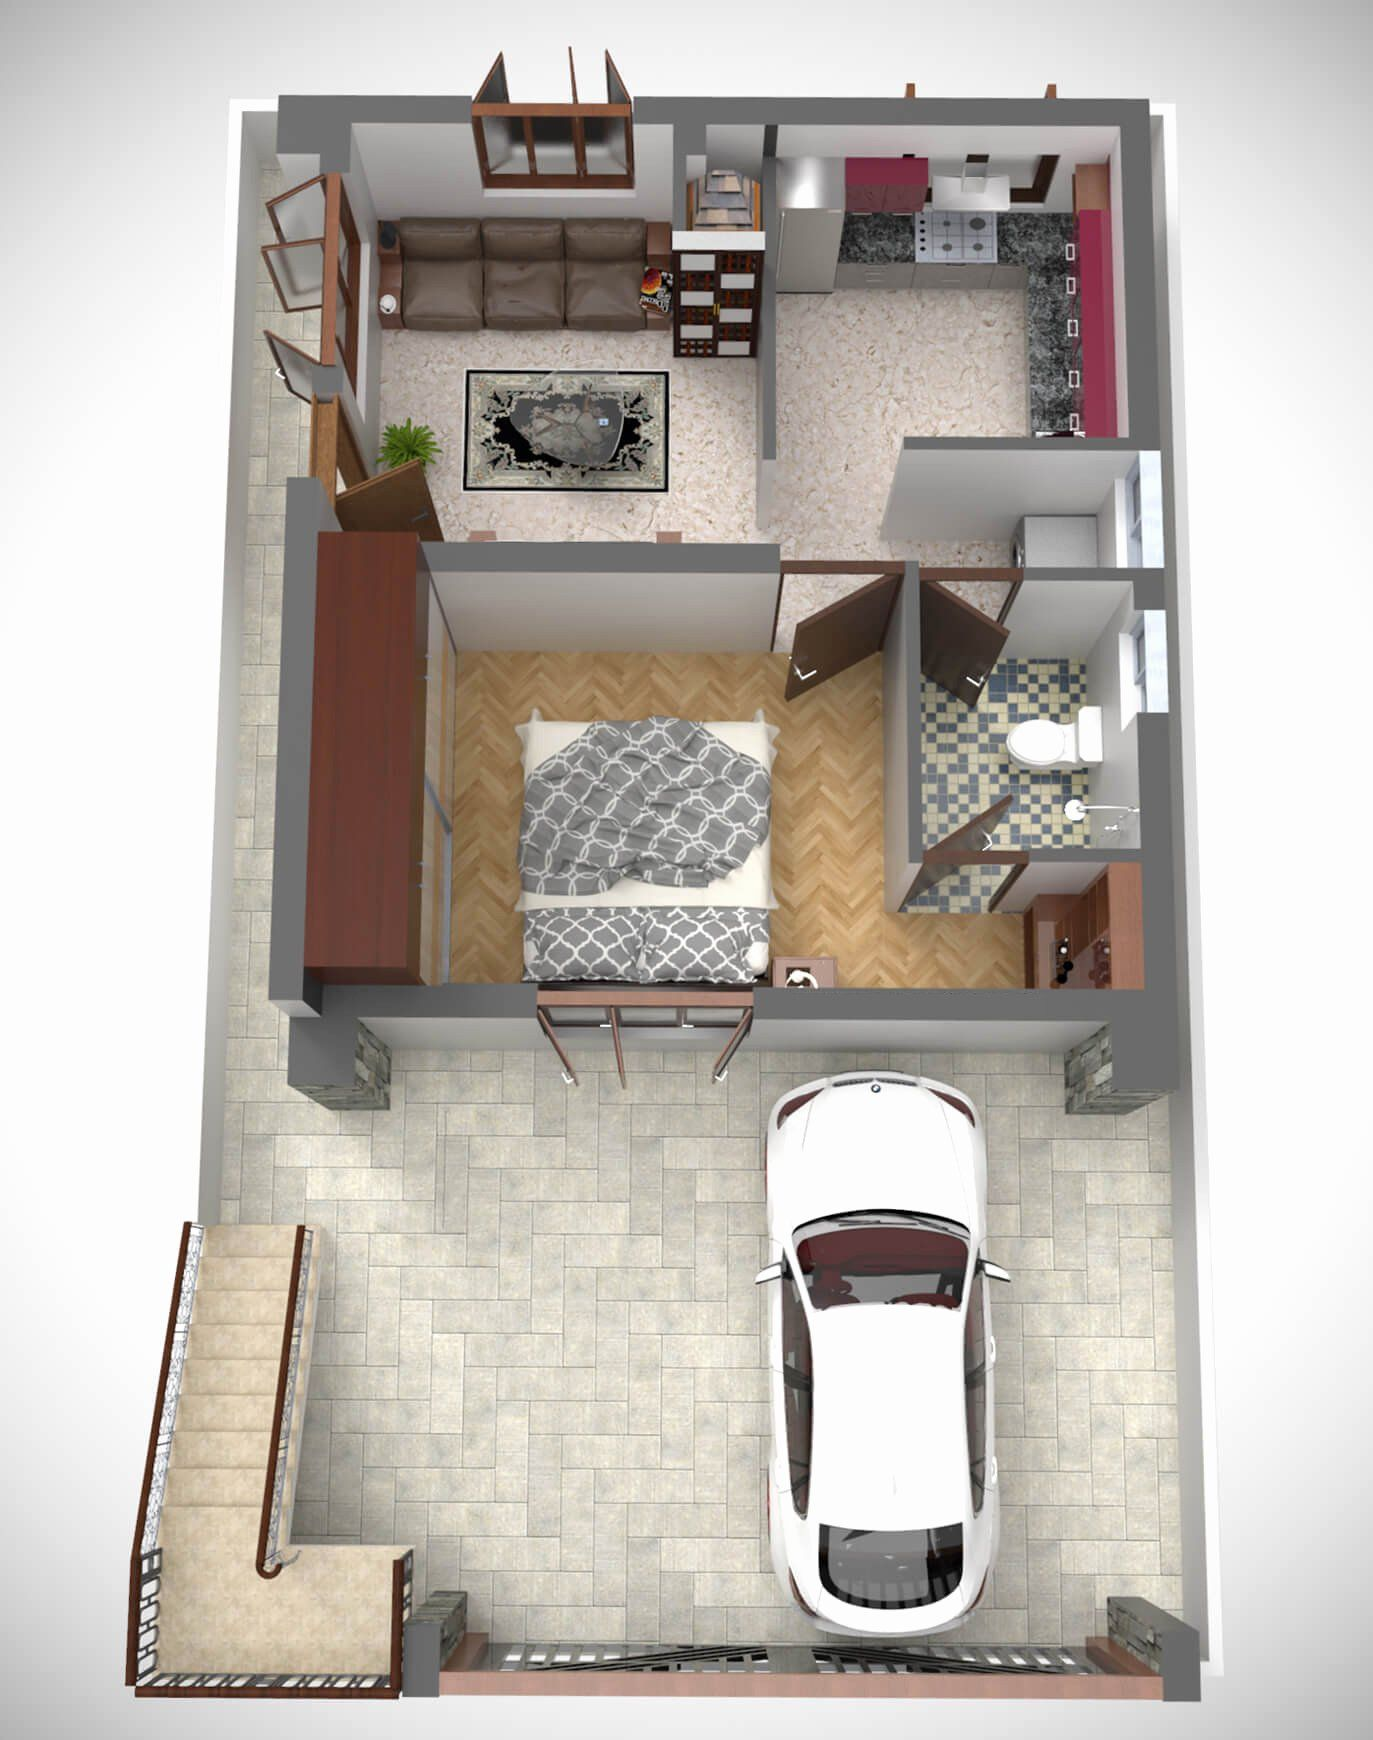 Free 3d Home Design Software Inspirational 3d Floor Plan Home Design Plans Floor Plan Design Small House Design